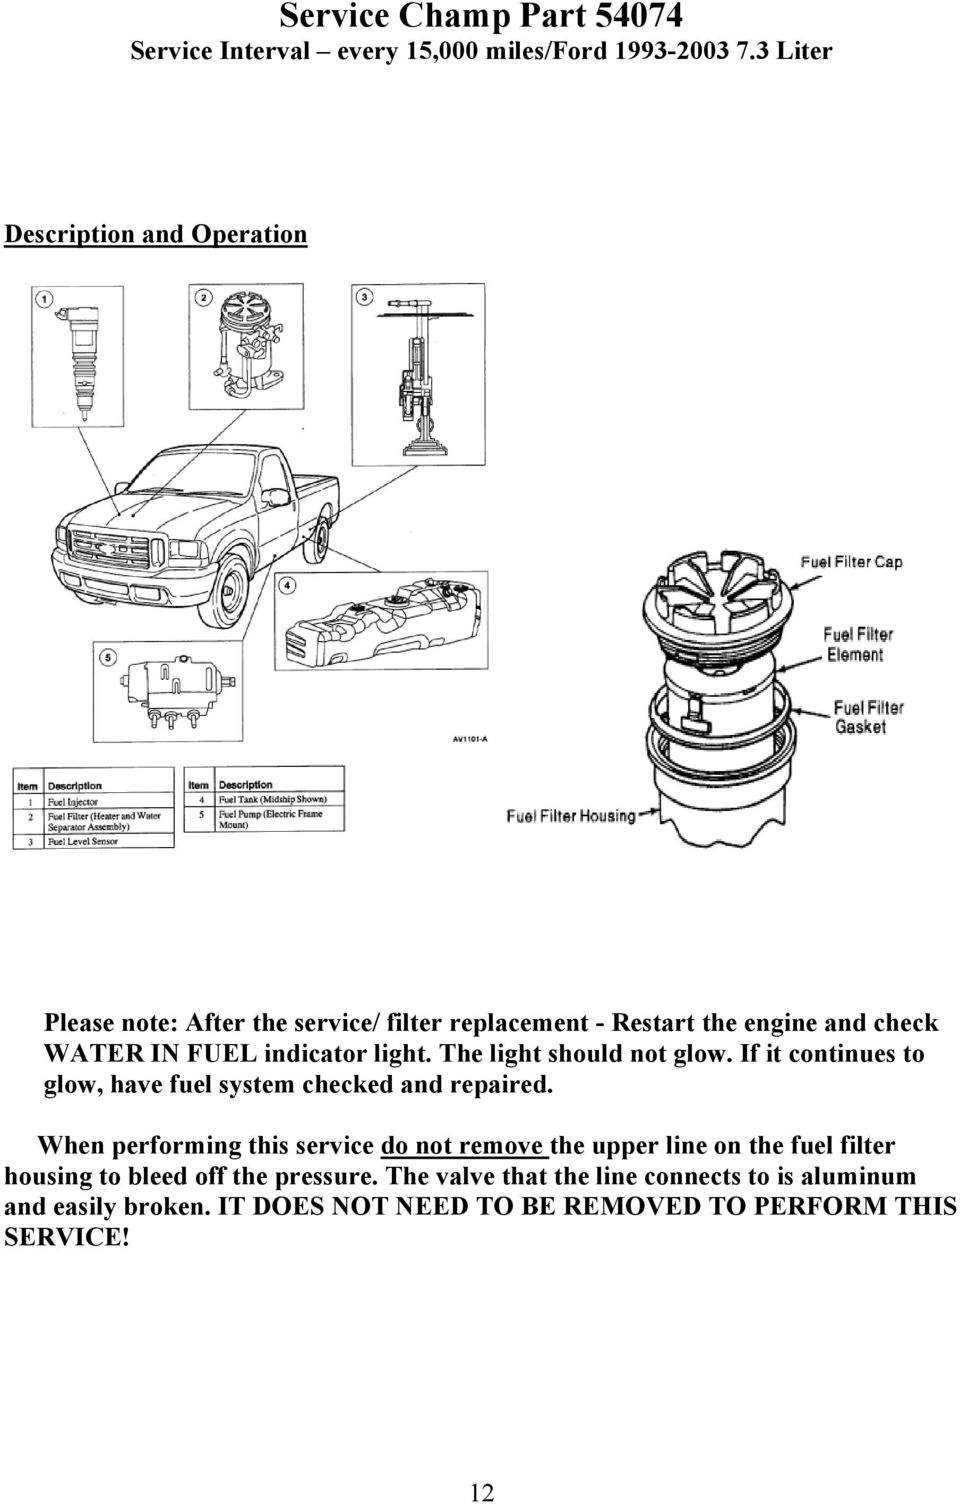 Pdf Fuel Filter Housing Assembly Indicator Light The Should Not Glow If It Continues To Have